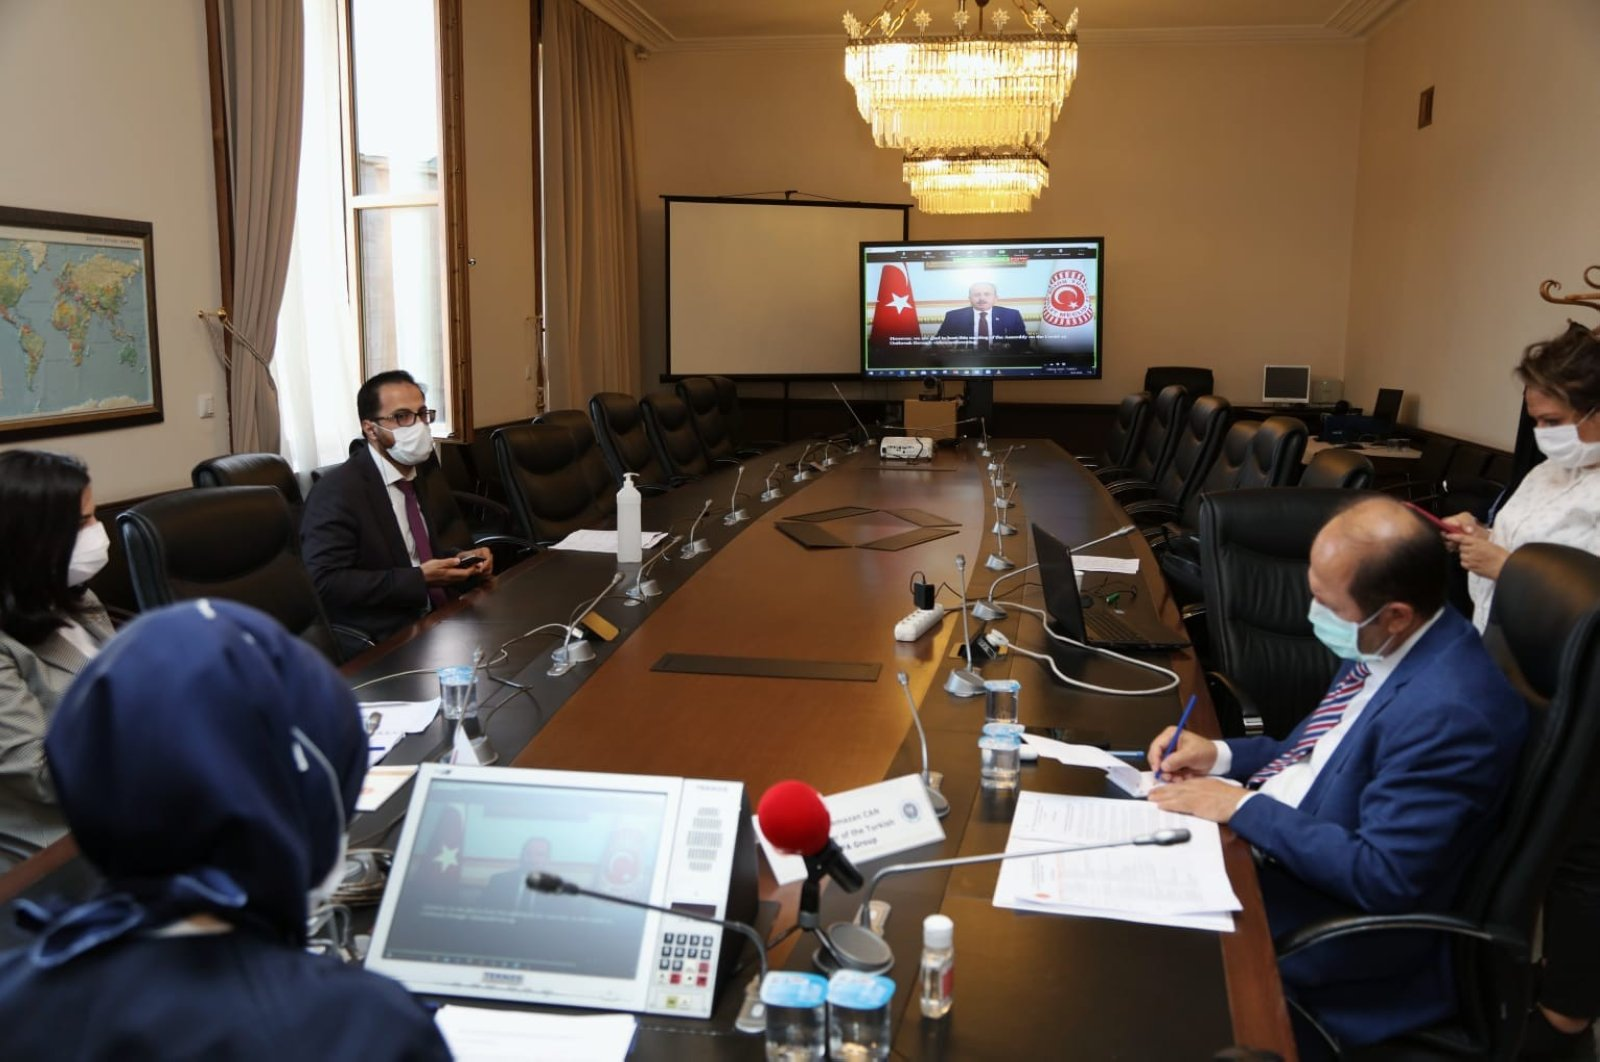 Parliament Speaker Mustafa Şentop (seen on the screen) chairs the Asian Parliamentary Assembly (APA) via videoconference, July 9, 2020. (IHA Photo)